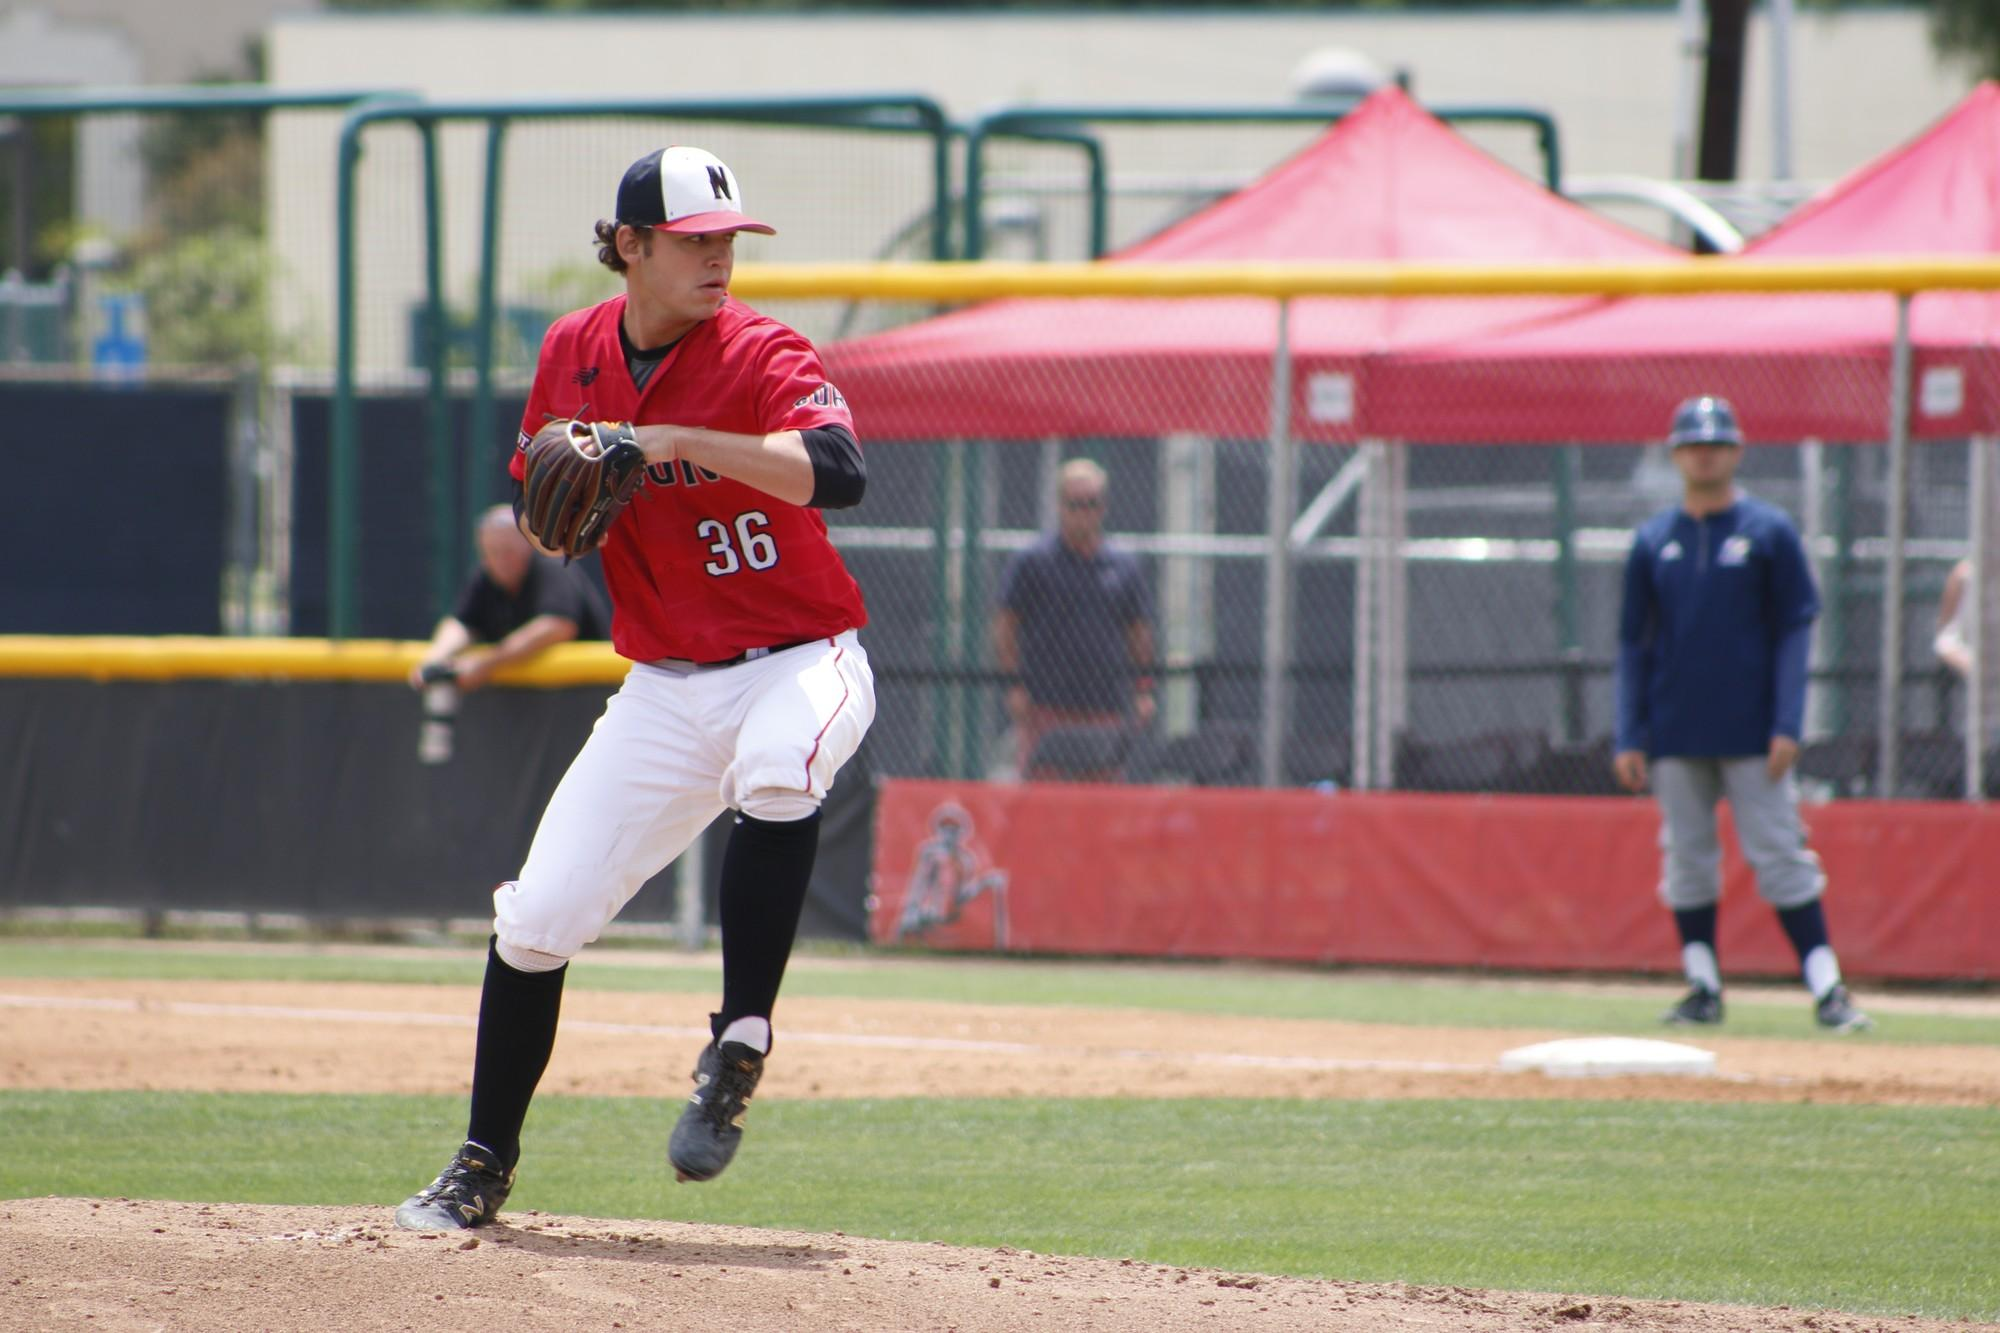 CSUN baseball player pitches the ball